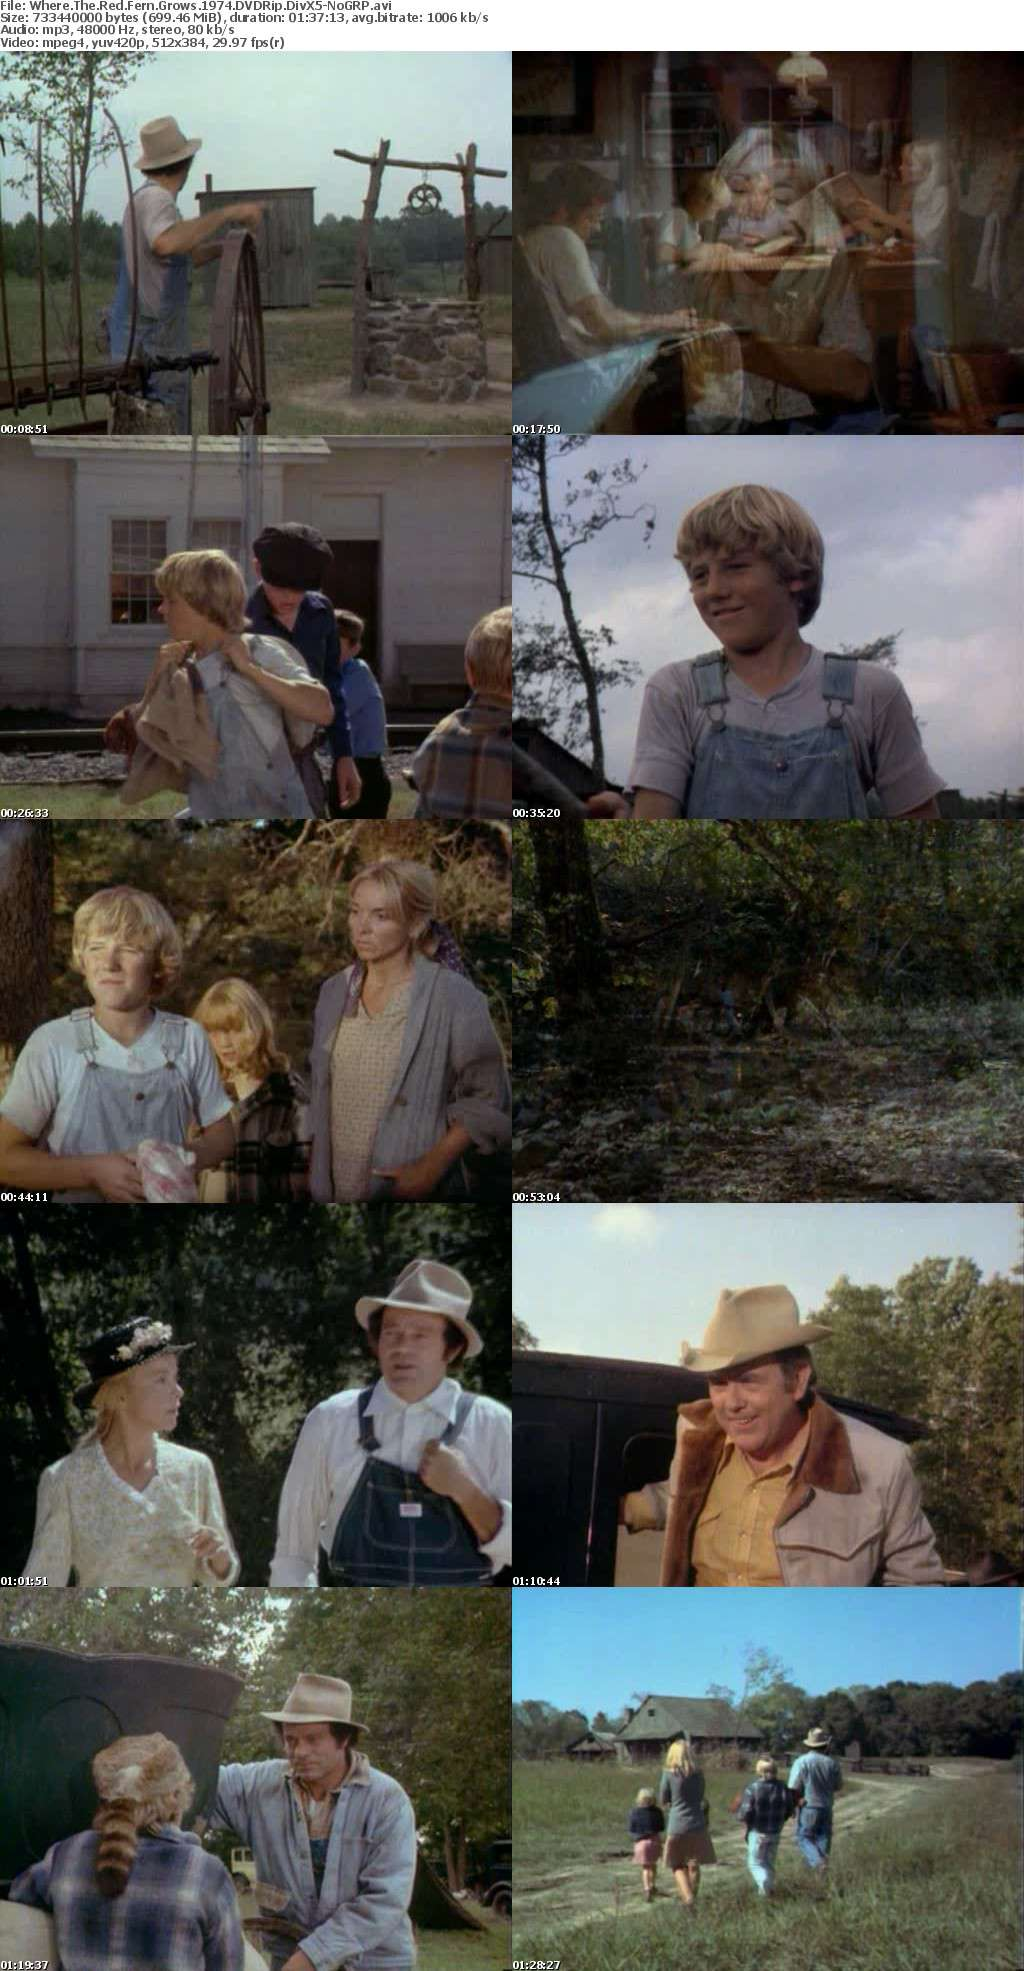 Where The Red Fern Grows 1974 DVDRip DivX5-NoGRP